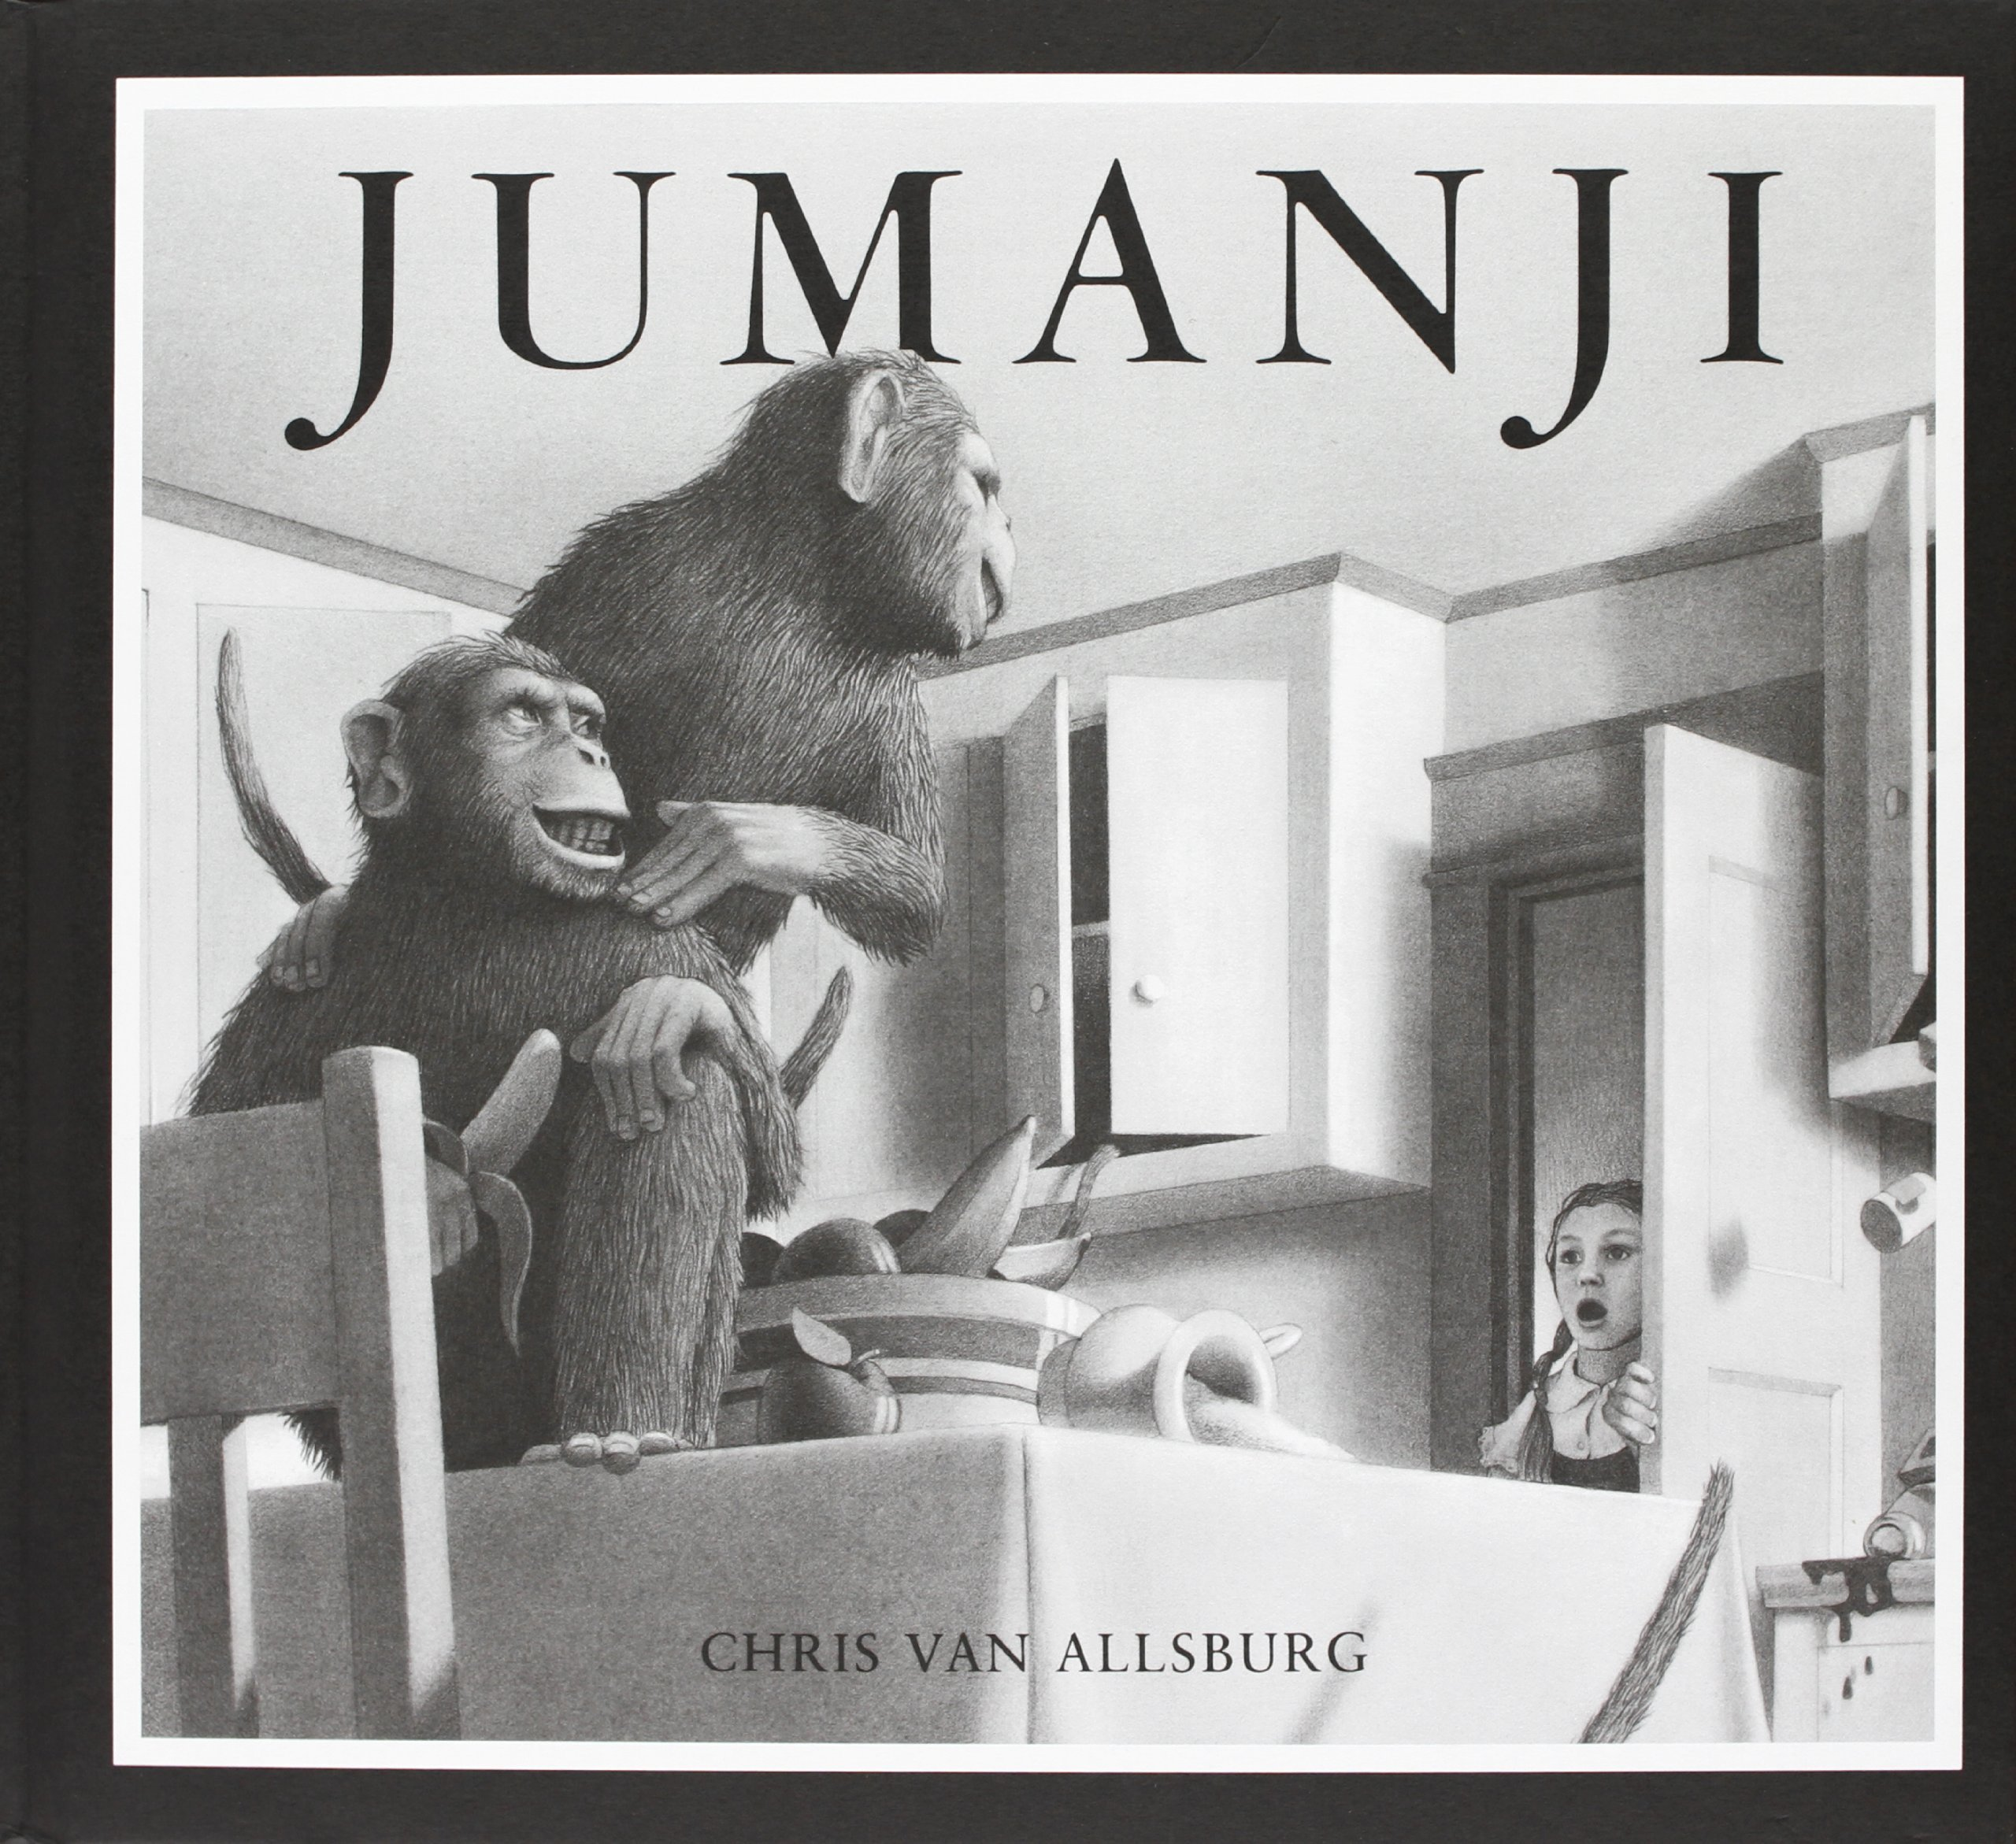 91uTU2e6I2L 20 Facts You Probably Didn't Know About Jumanji